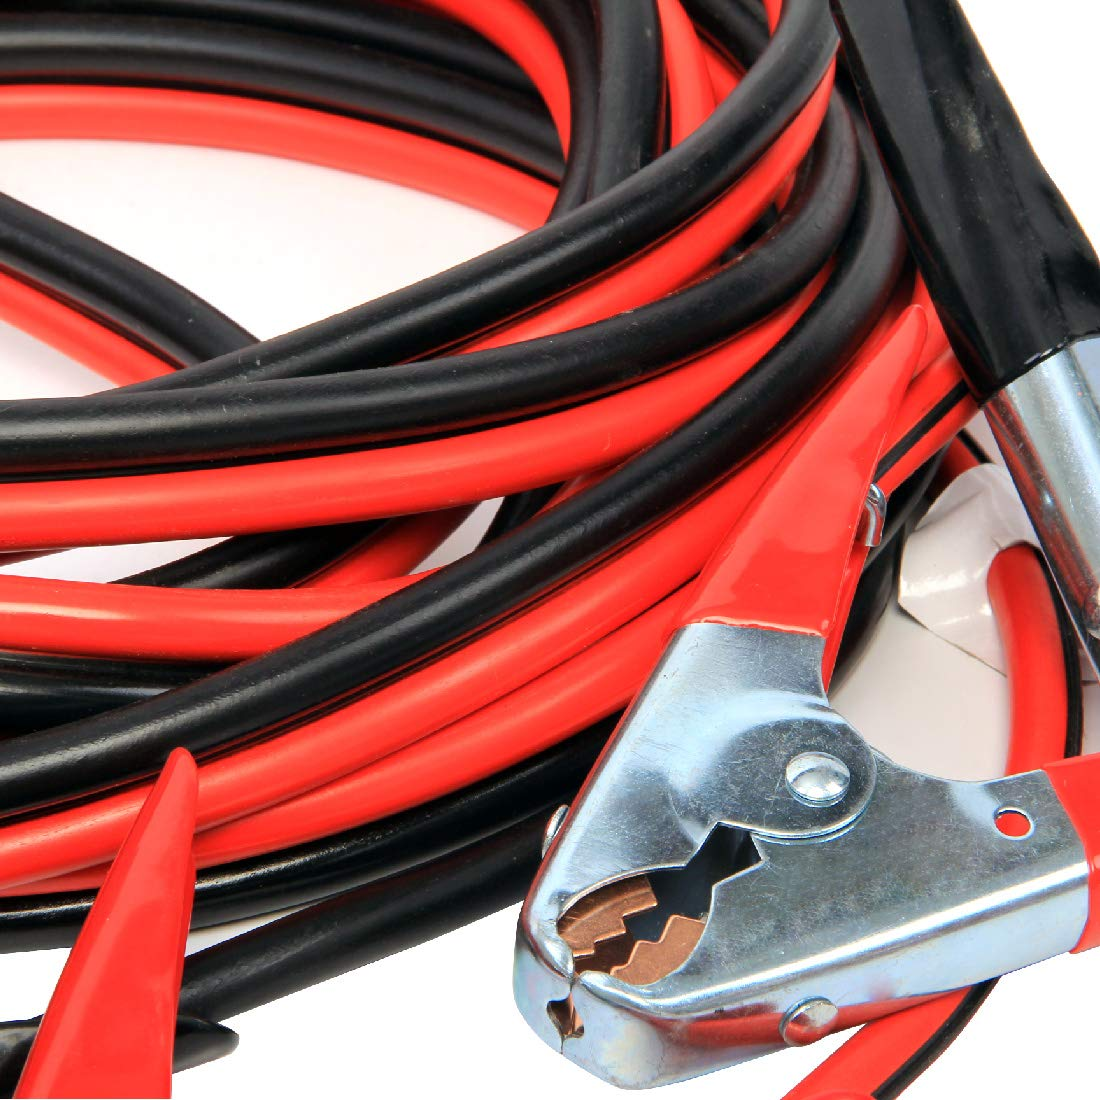 AOTOMIO 4 Gauge 25 Feet Jumper Cables 12V Heavy Duty Booster,Alligator Clips with Travel Bag for Most Cars Trucks SUVs